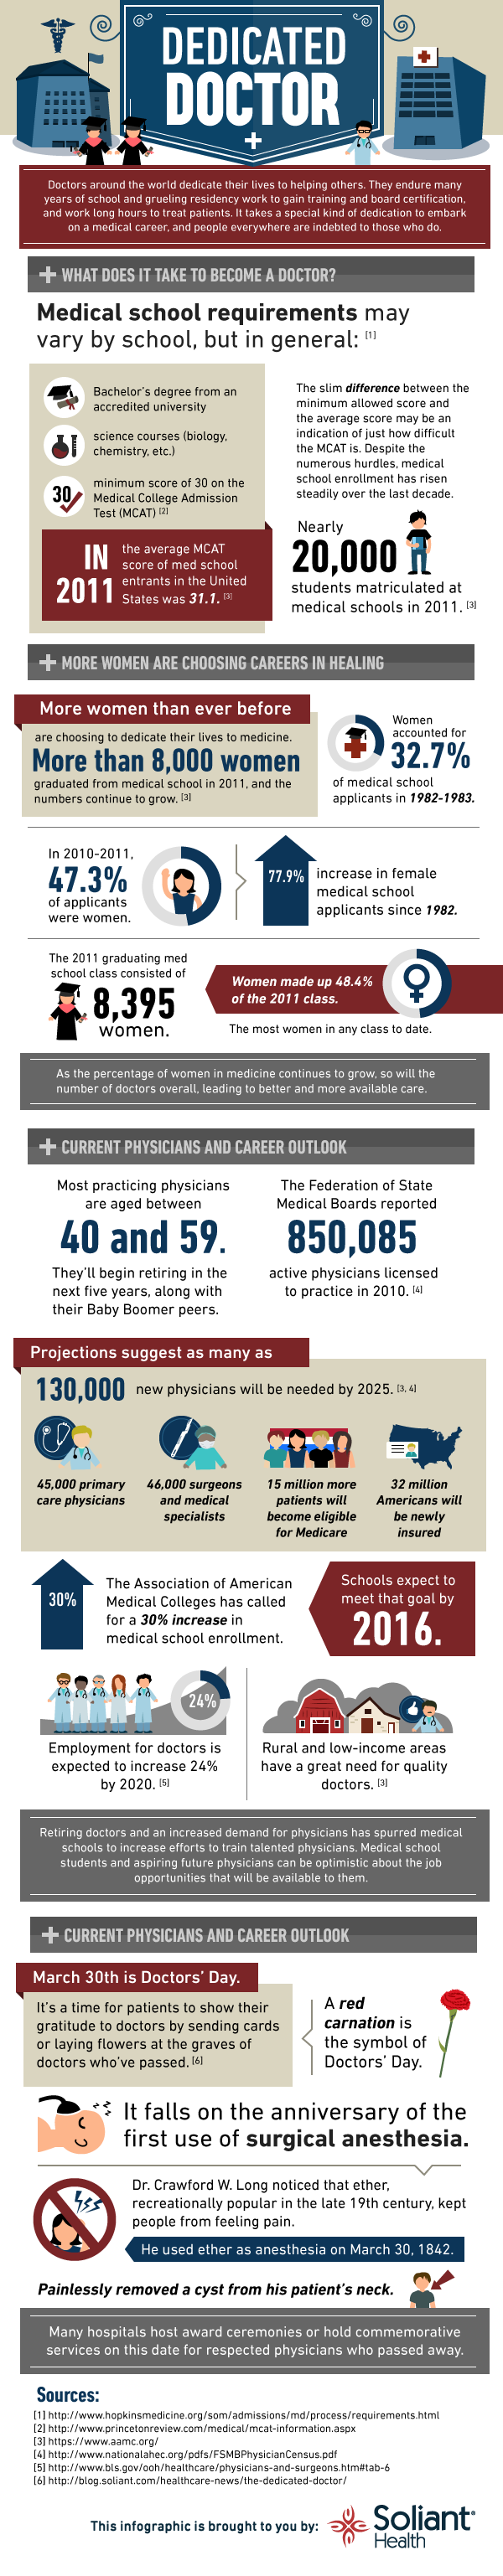 Doctor Career Infographic